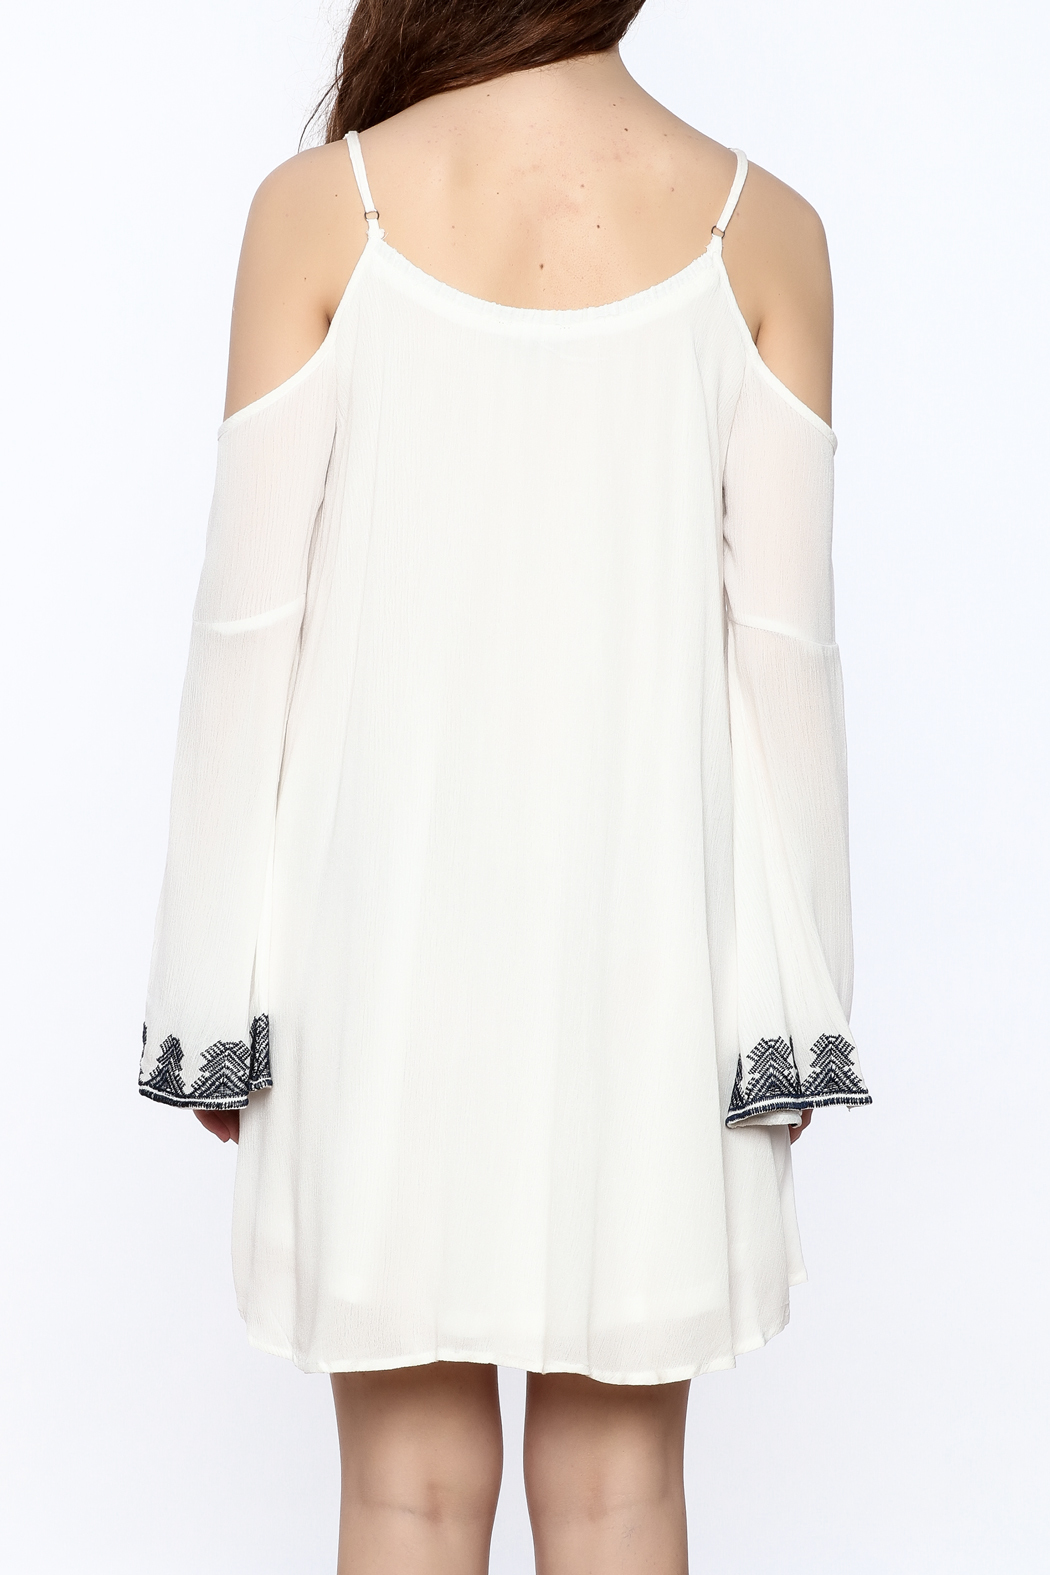 Very J Embroidered Loose Dress - Back Cropped Image